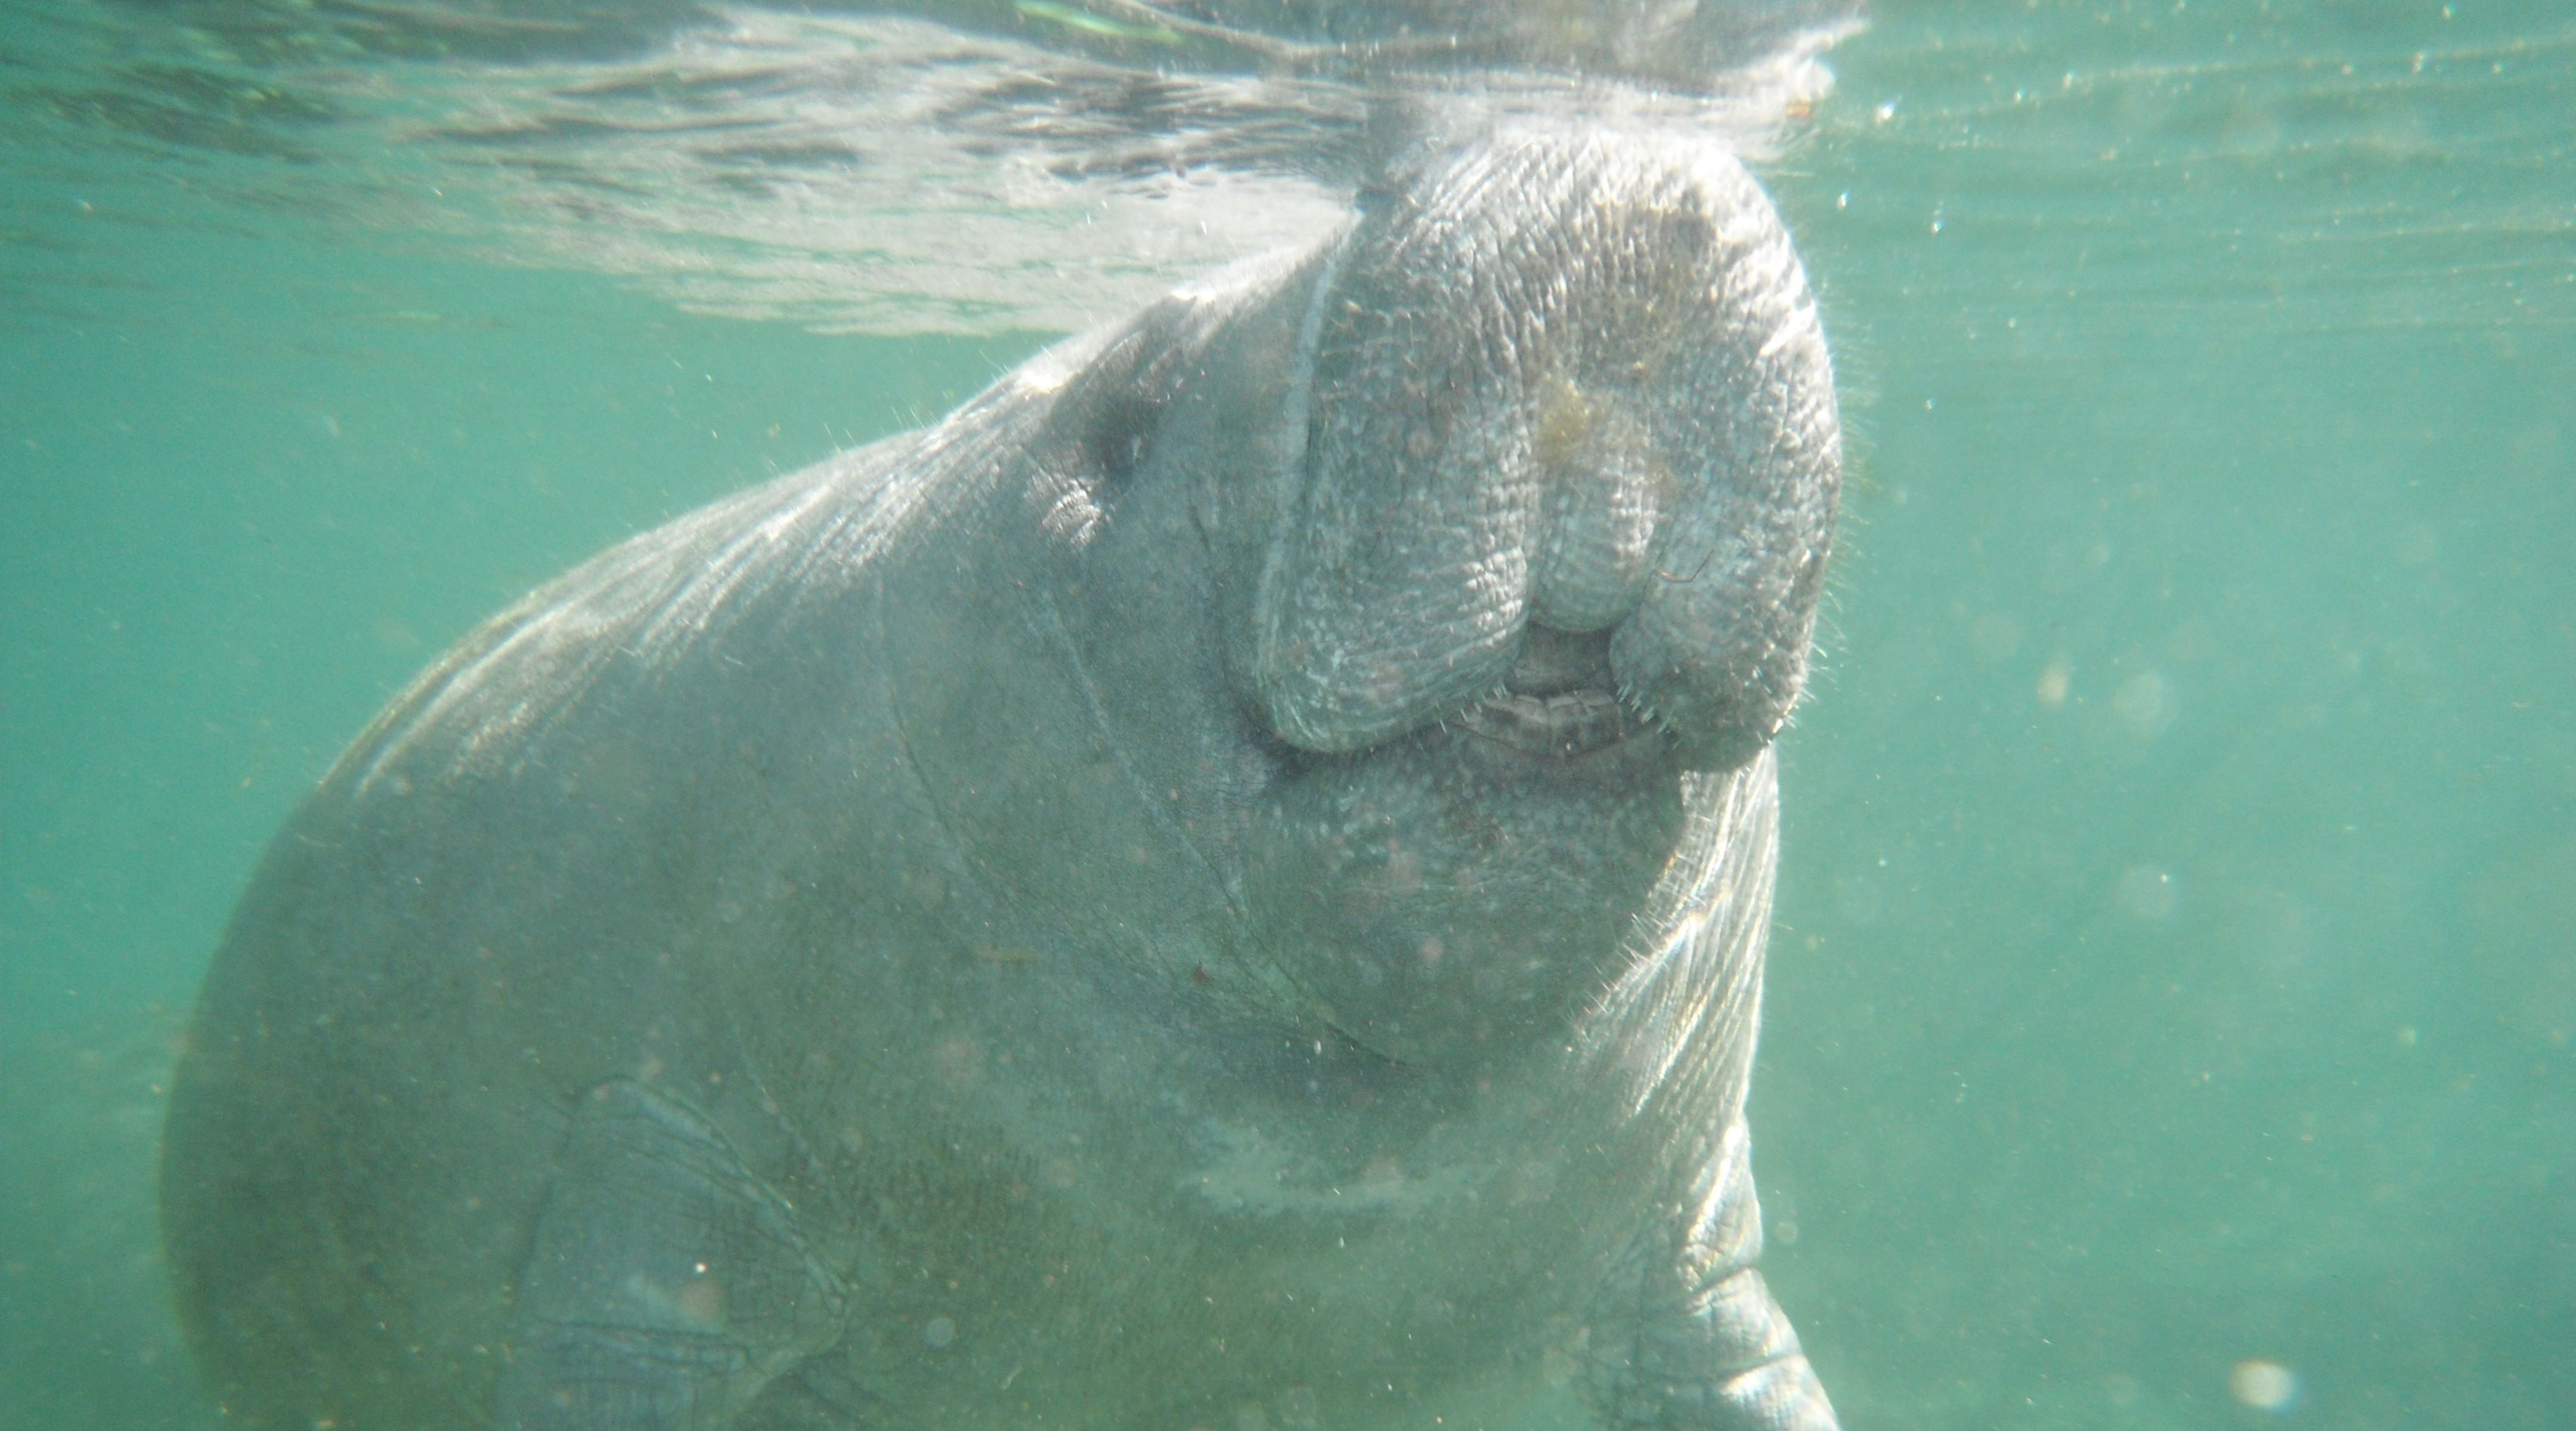 Groupon Swim With The Manatees - allspecialcoupons.com